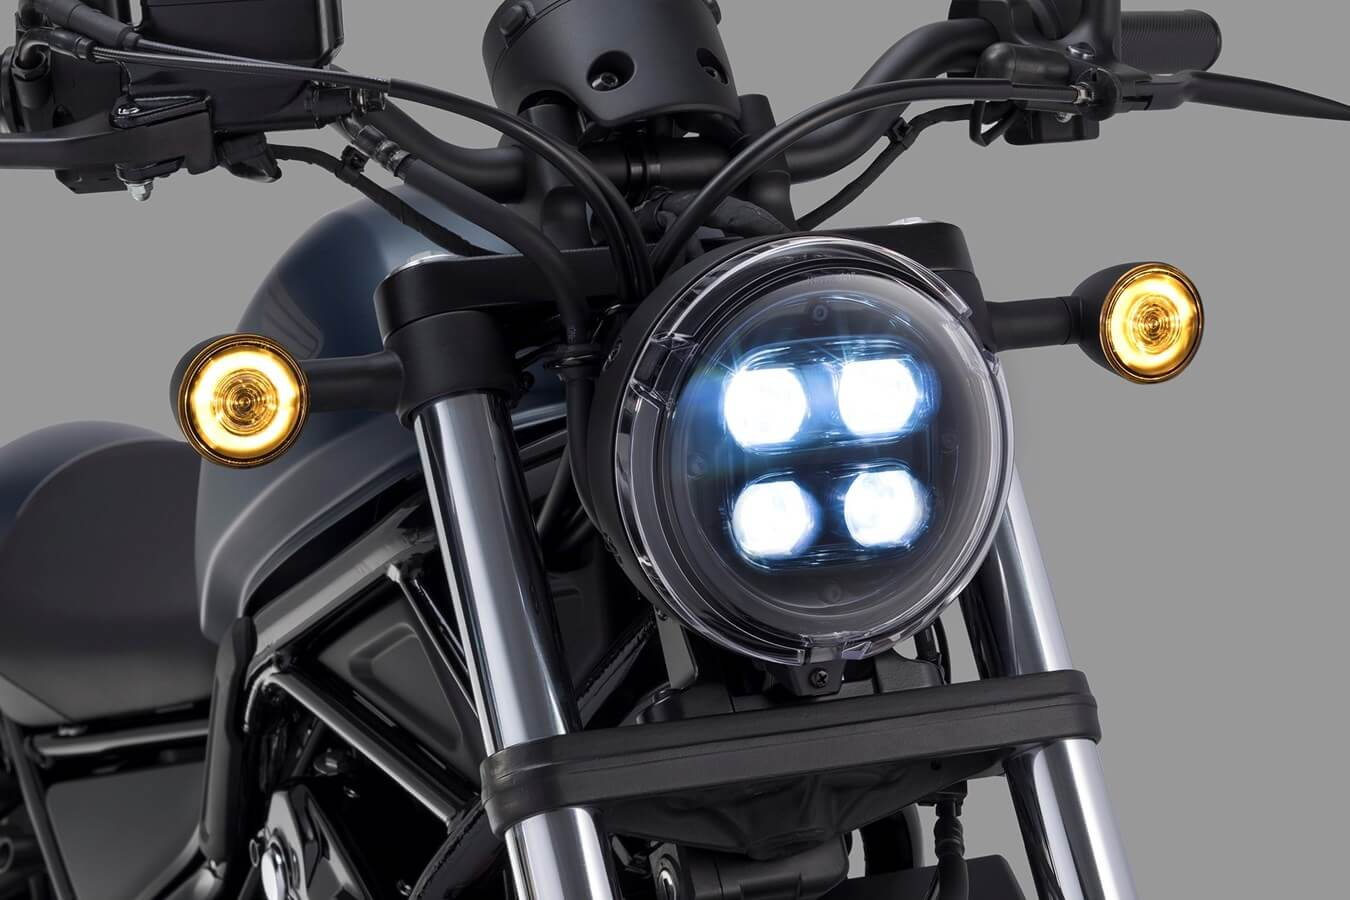 Headlight Honda Rebel 500 2020 High Beam